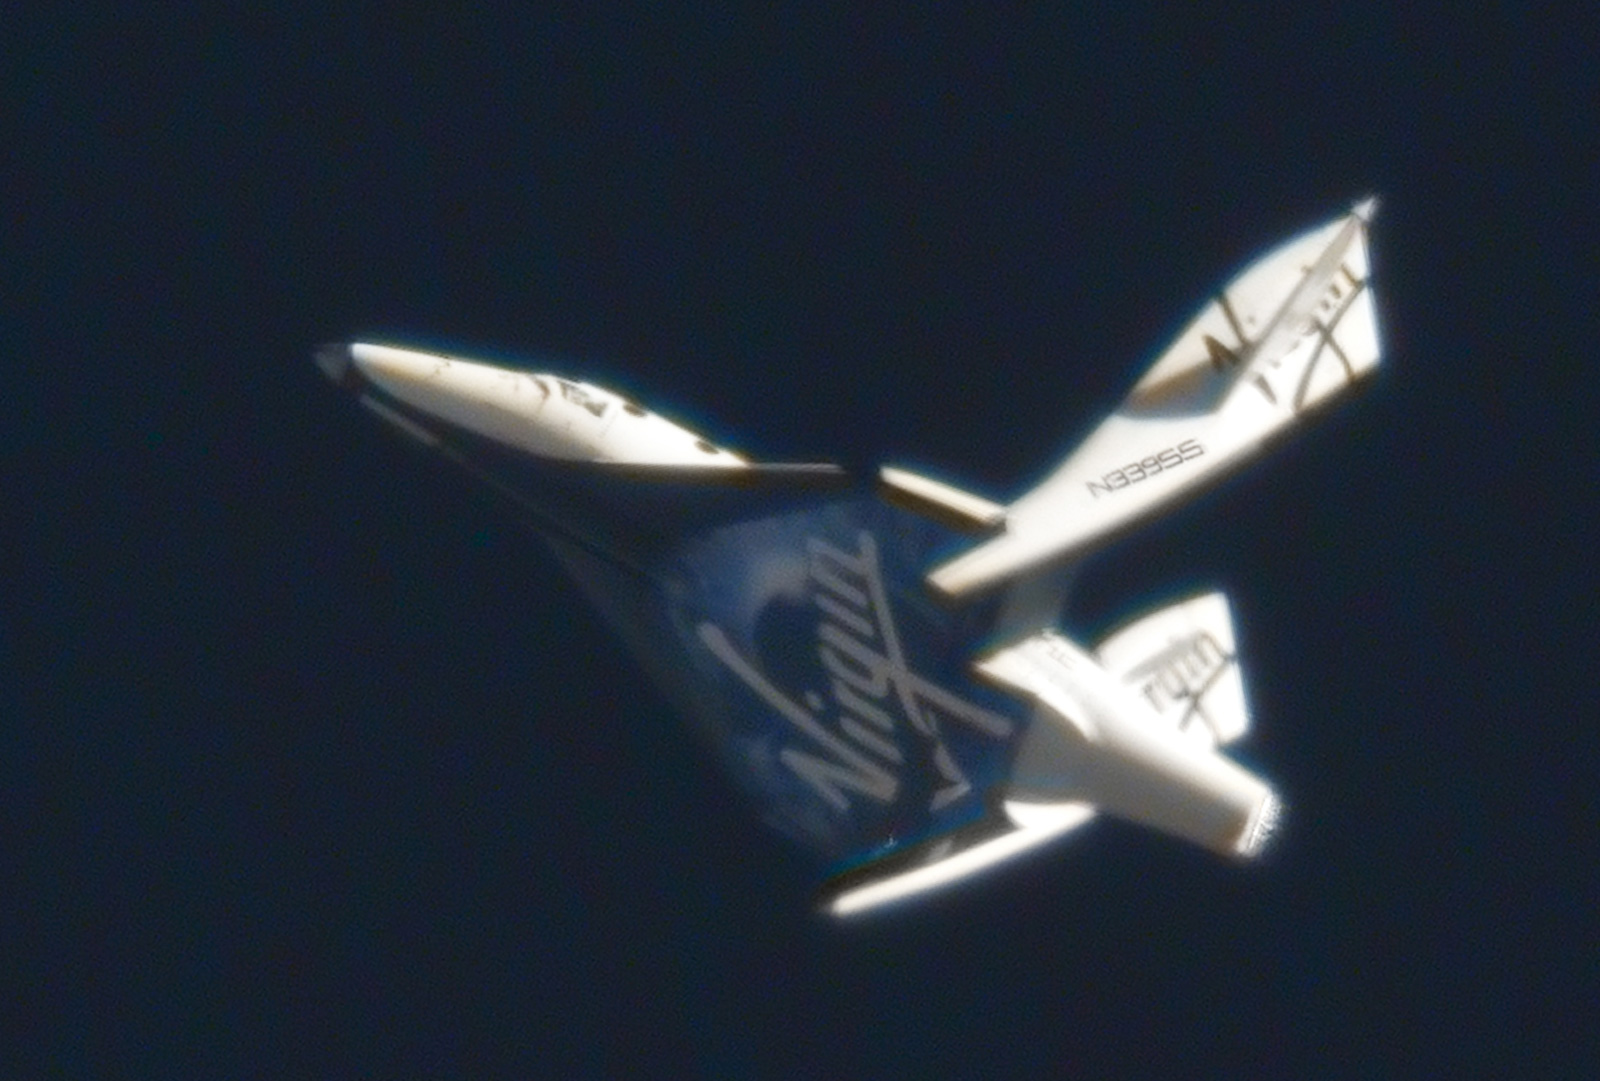 Virgin Galactic's SpaceShip Two Made First Feathered Flight